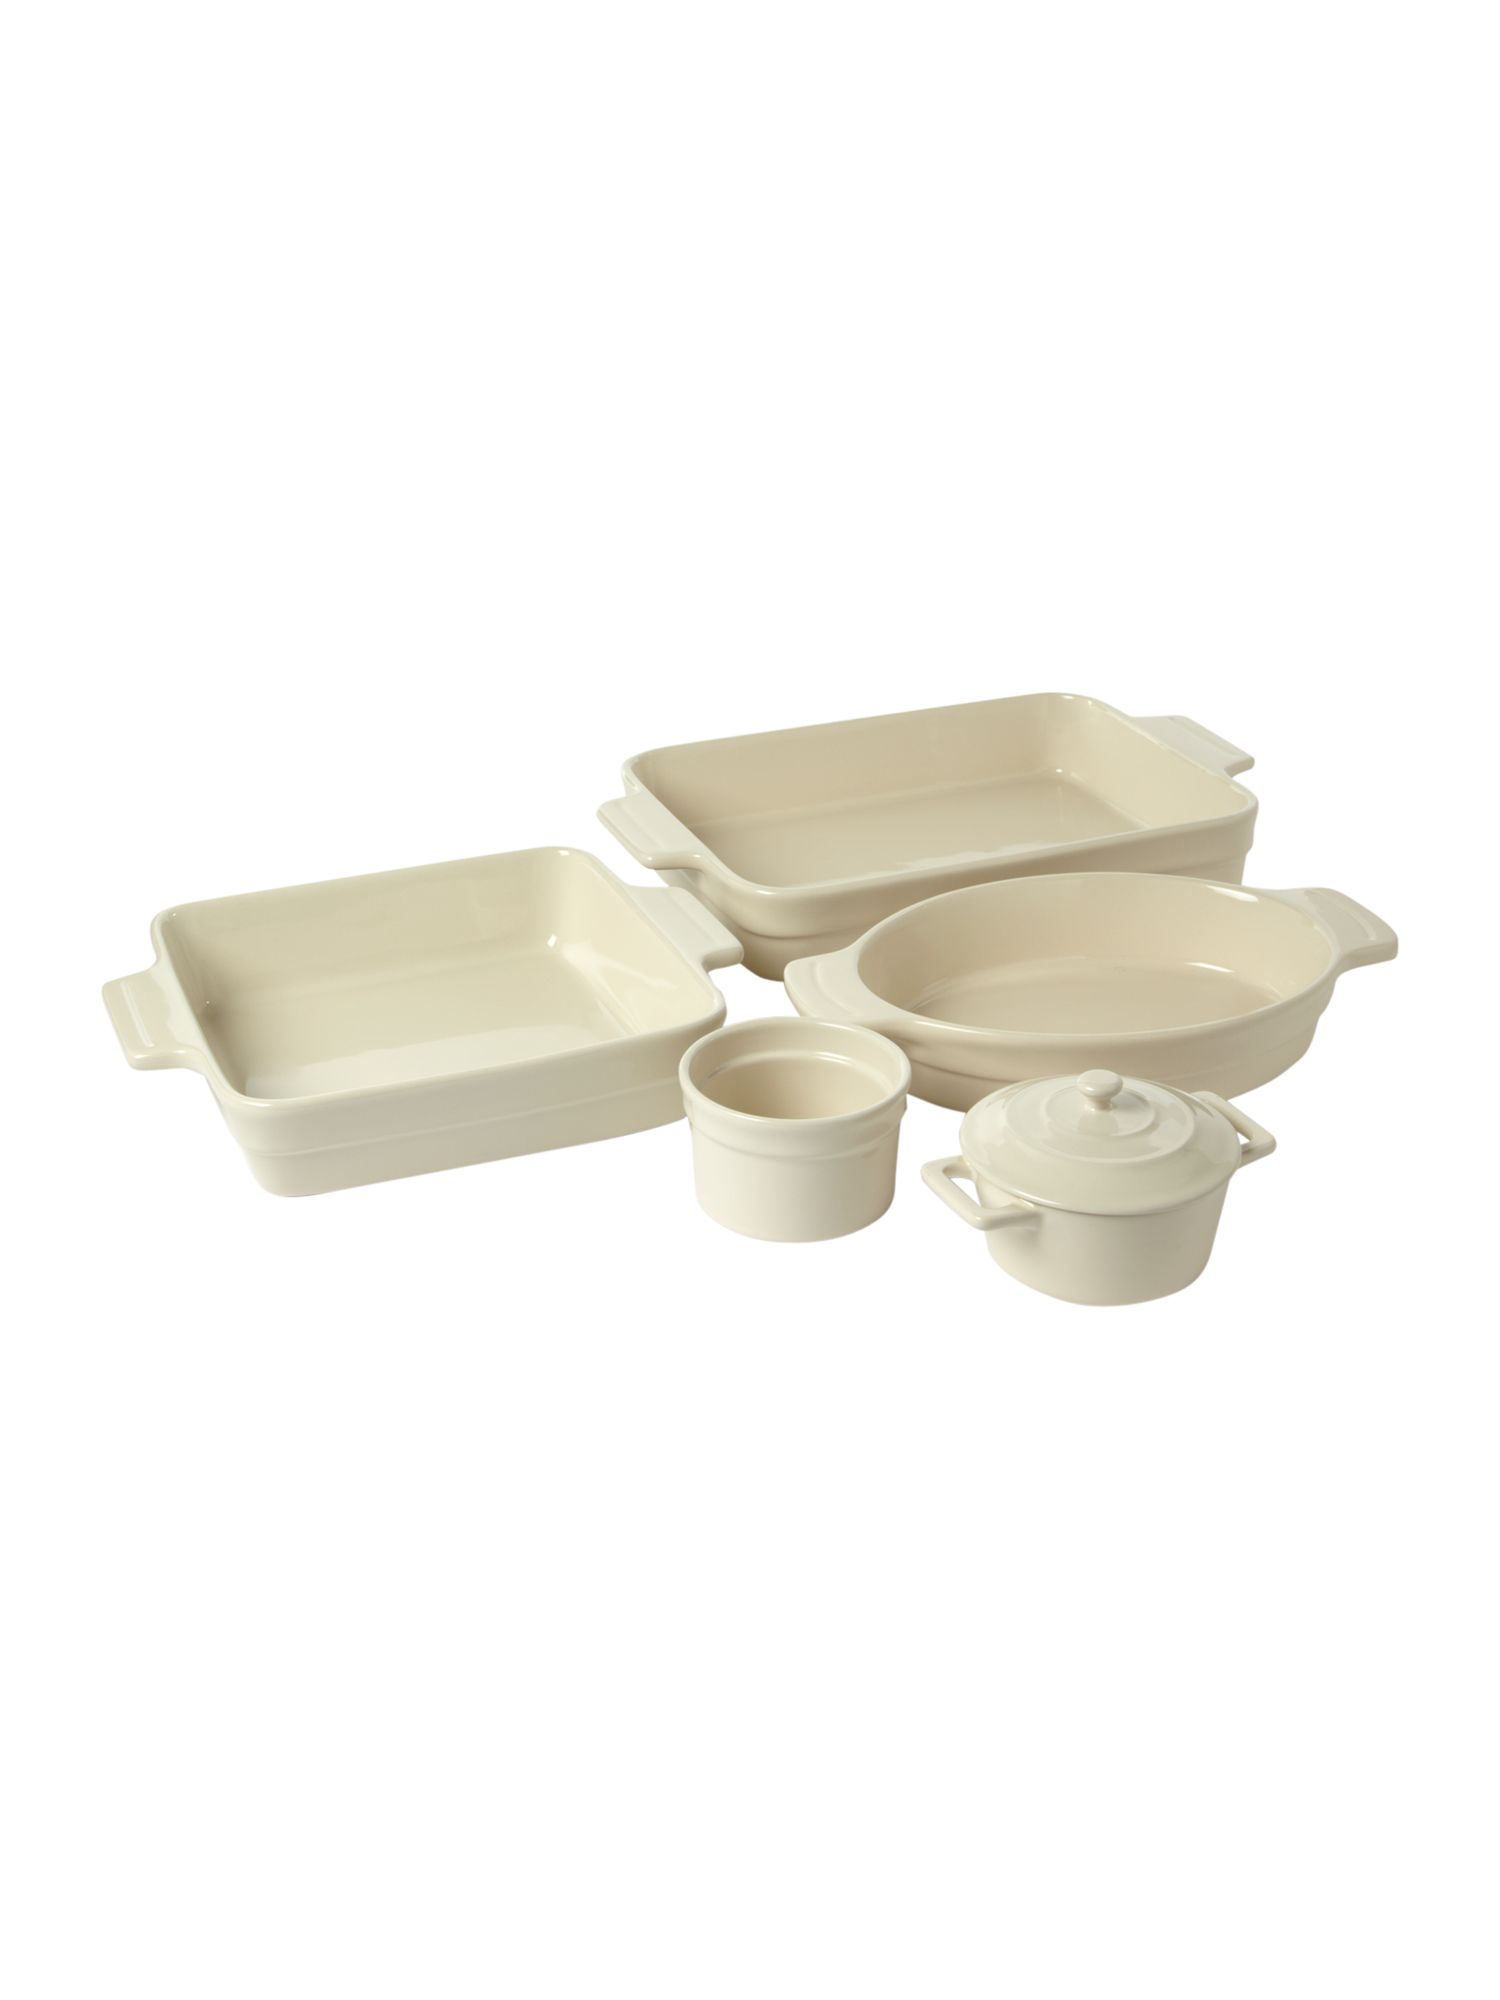 Maison cream oven to table ware